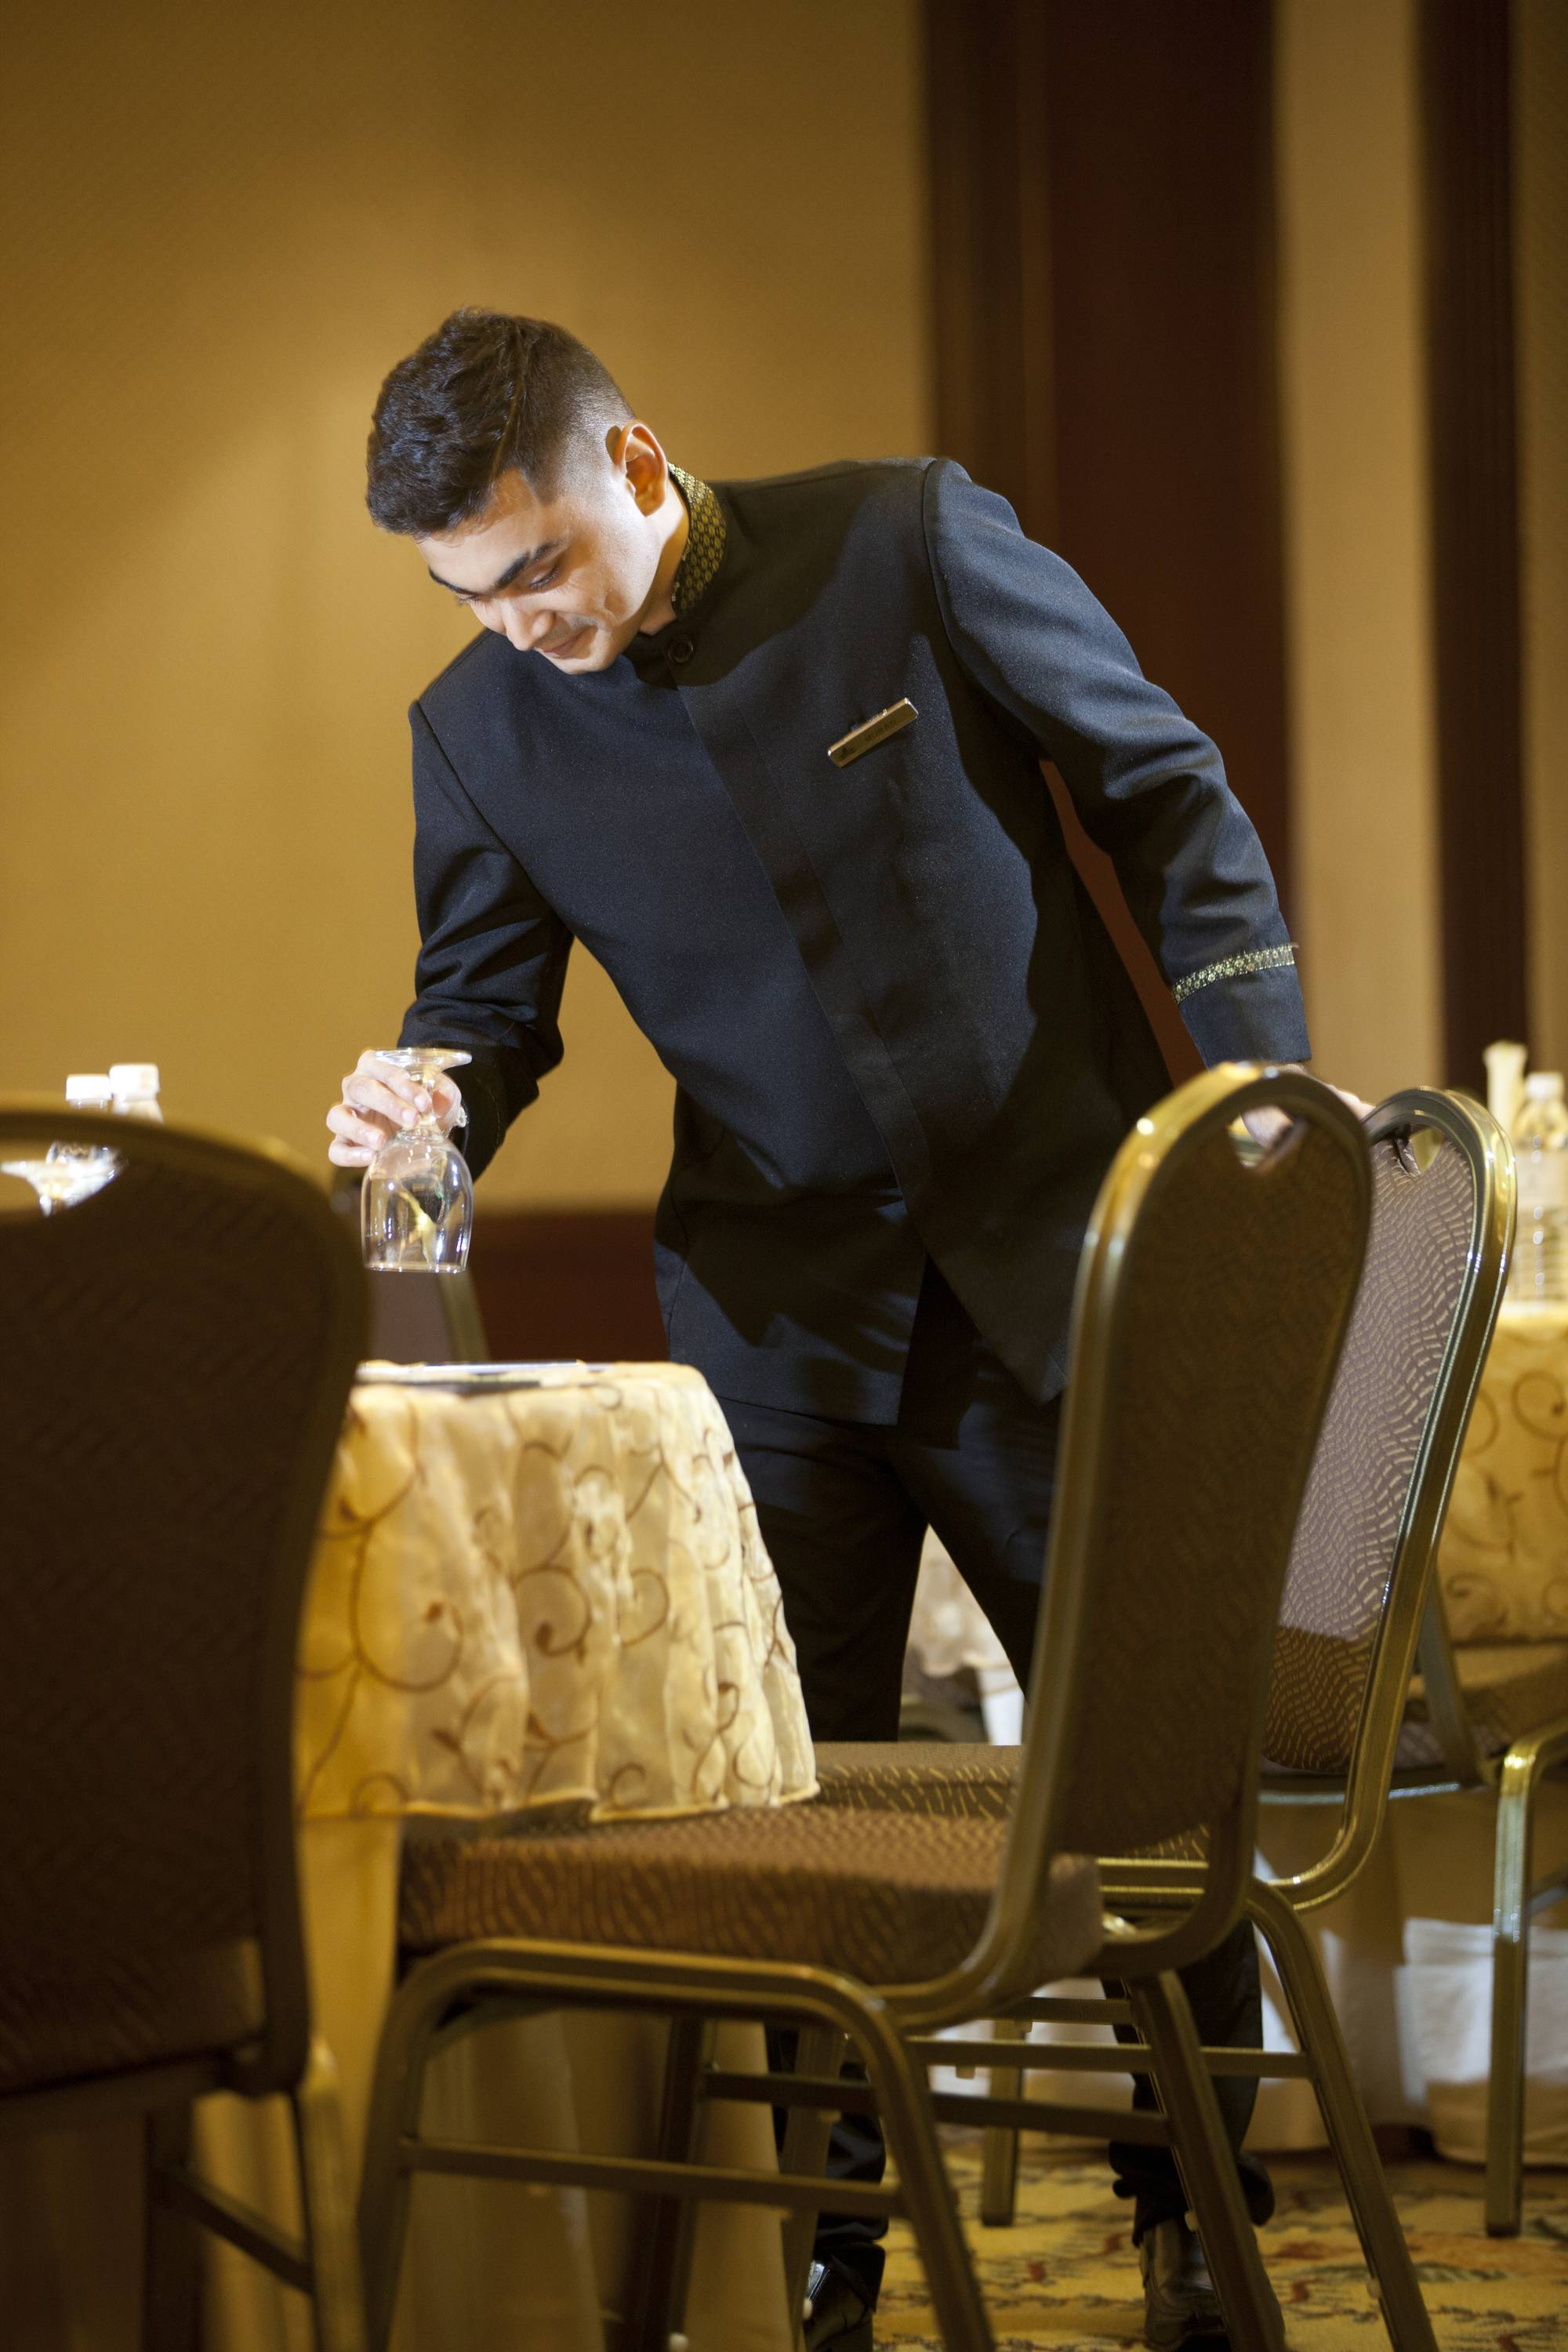 Providing elegant service to perfect your event